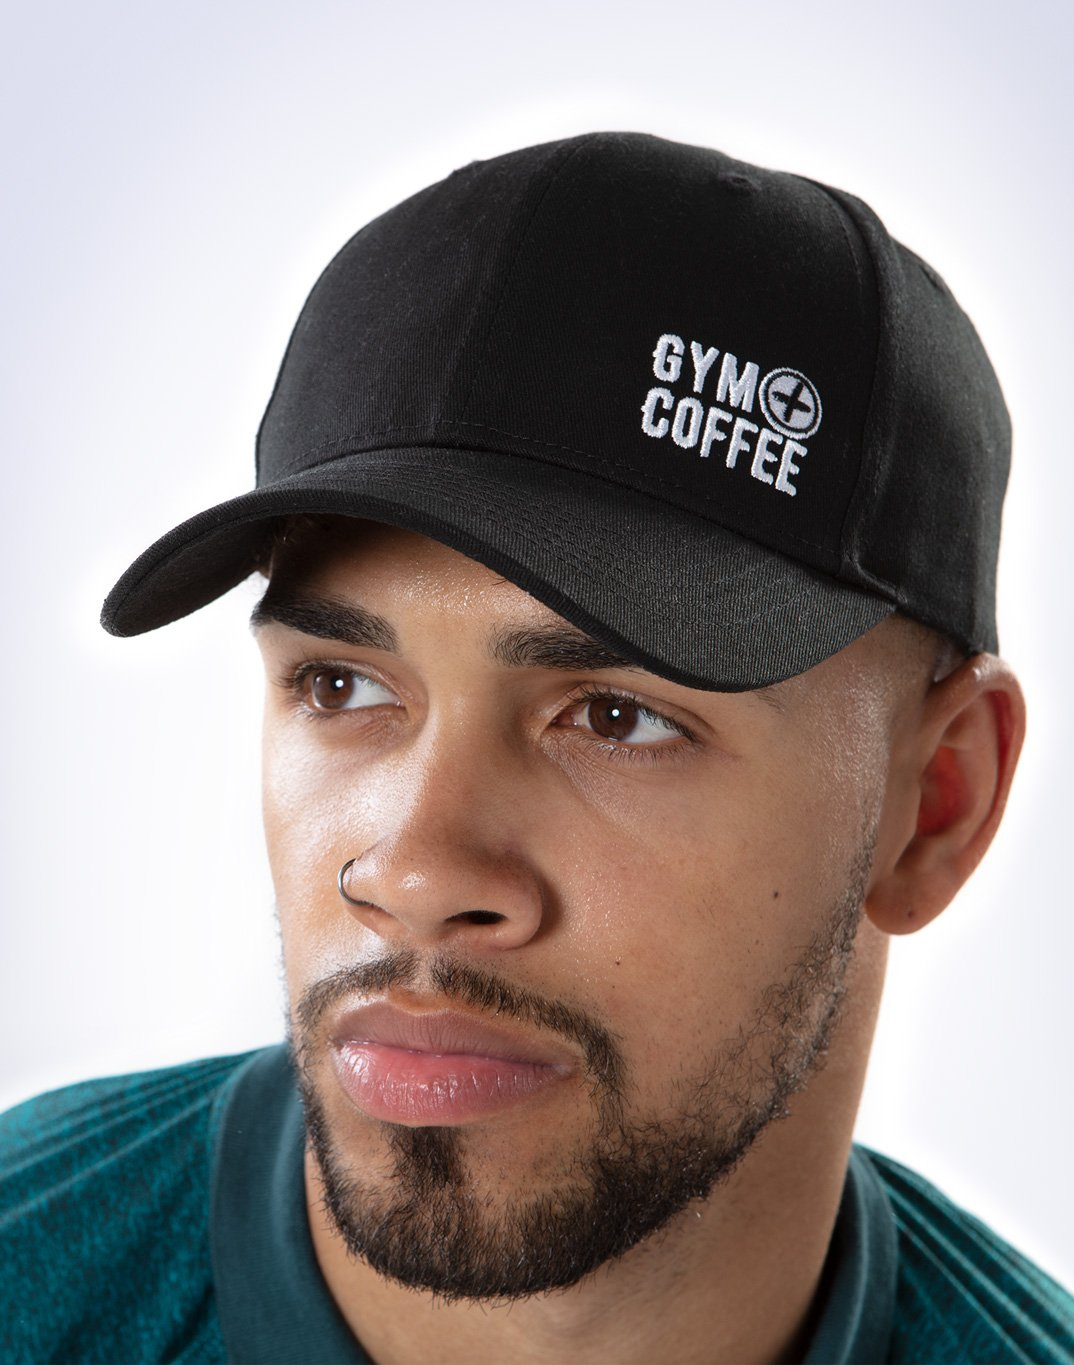 Gym Plus Coffee Beanie Hats Off Cap in Black Designed in Ireland